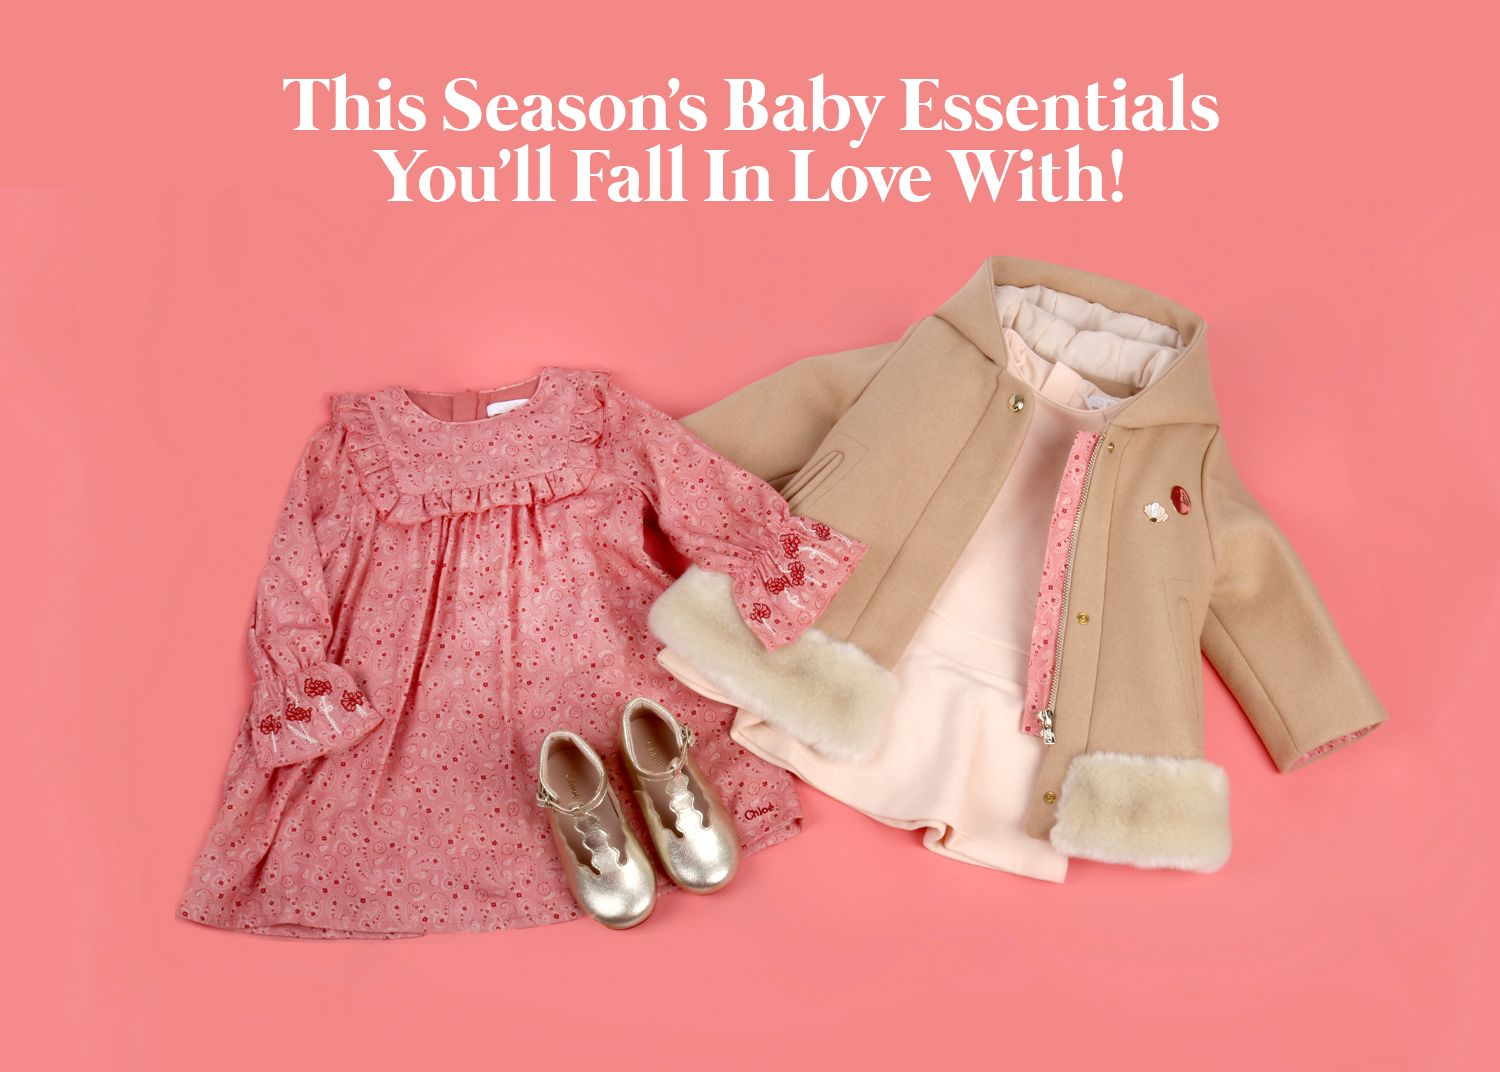 This Season's Baby Essentials You'll Fall In Love With!